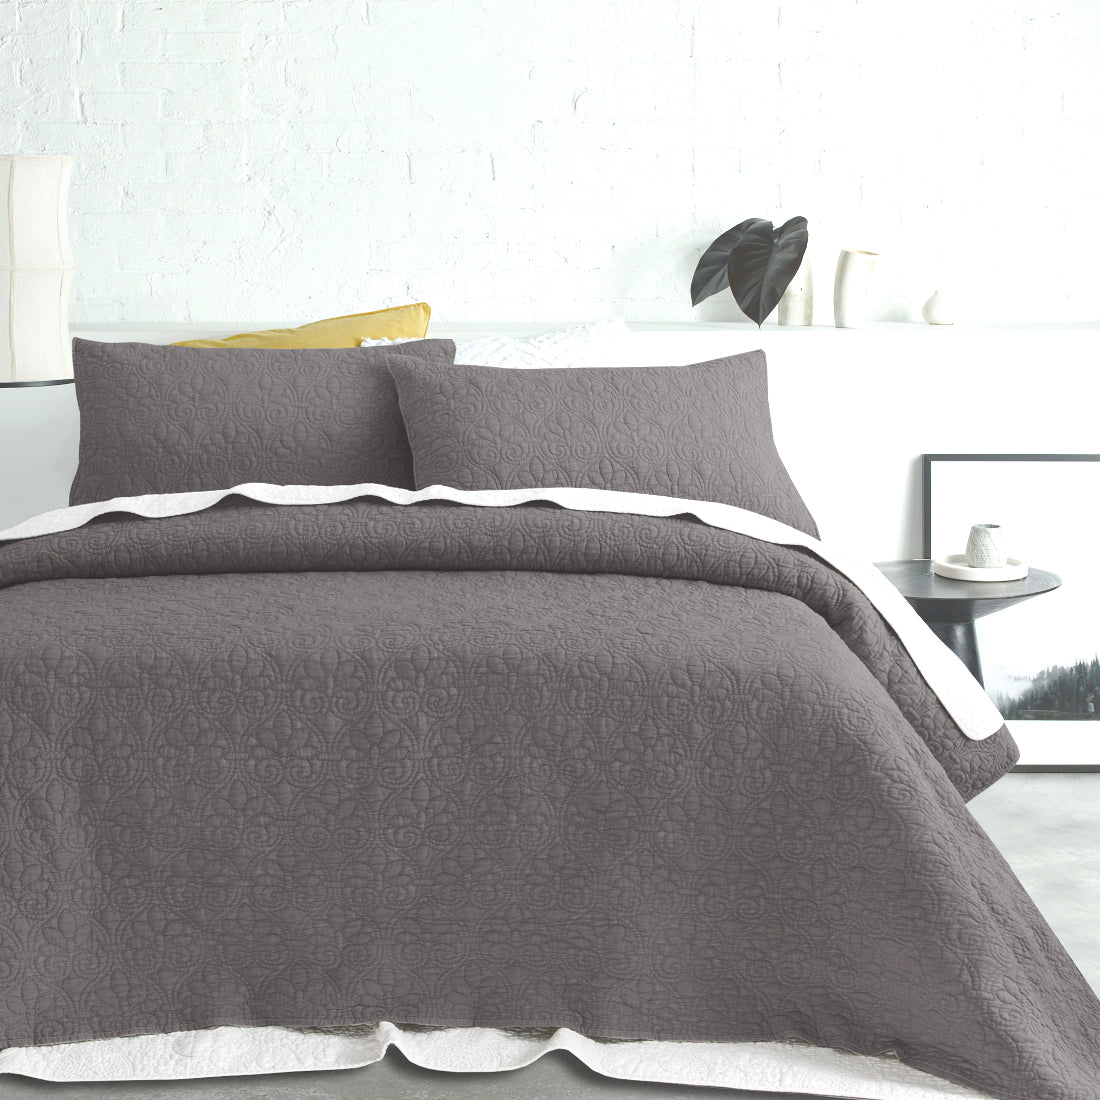 Stone-Washed Coverlet Set - 3 Colors